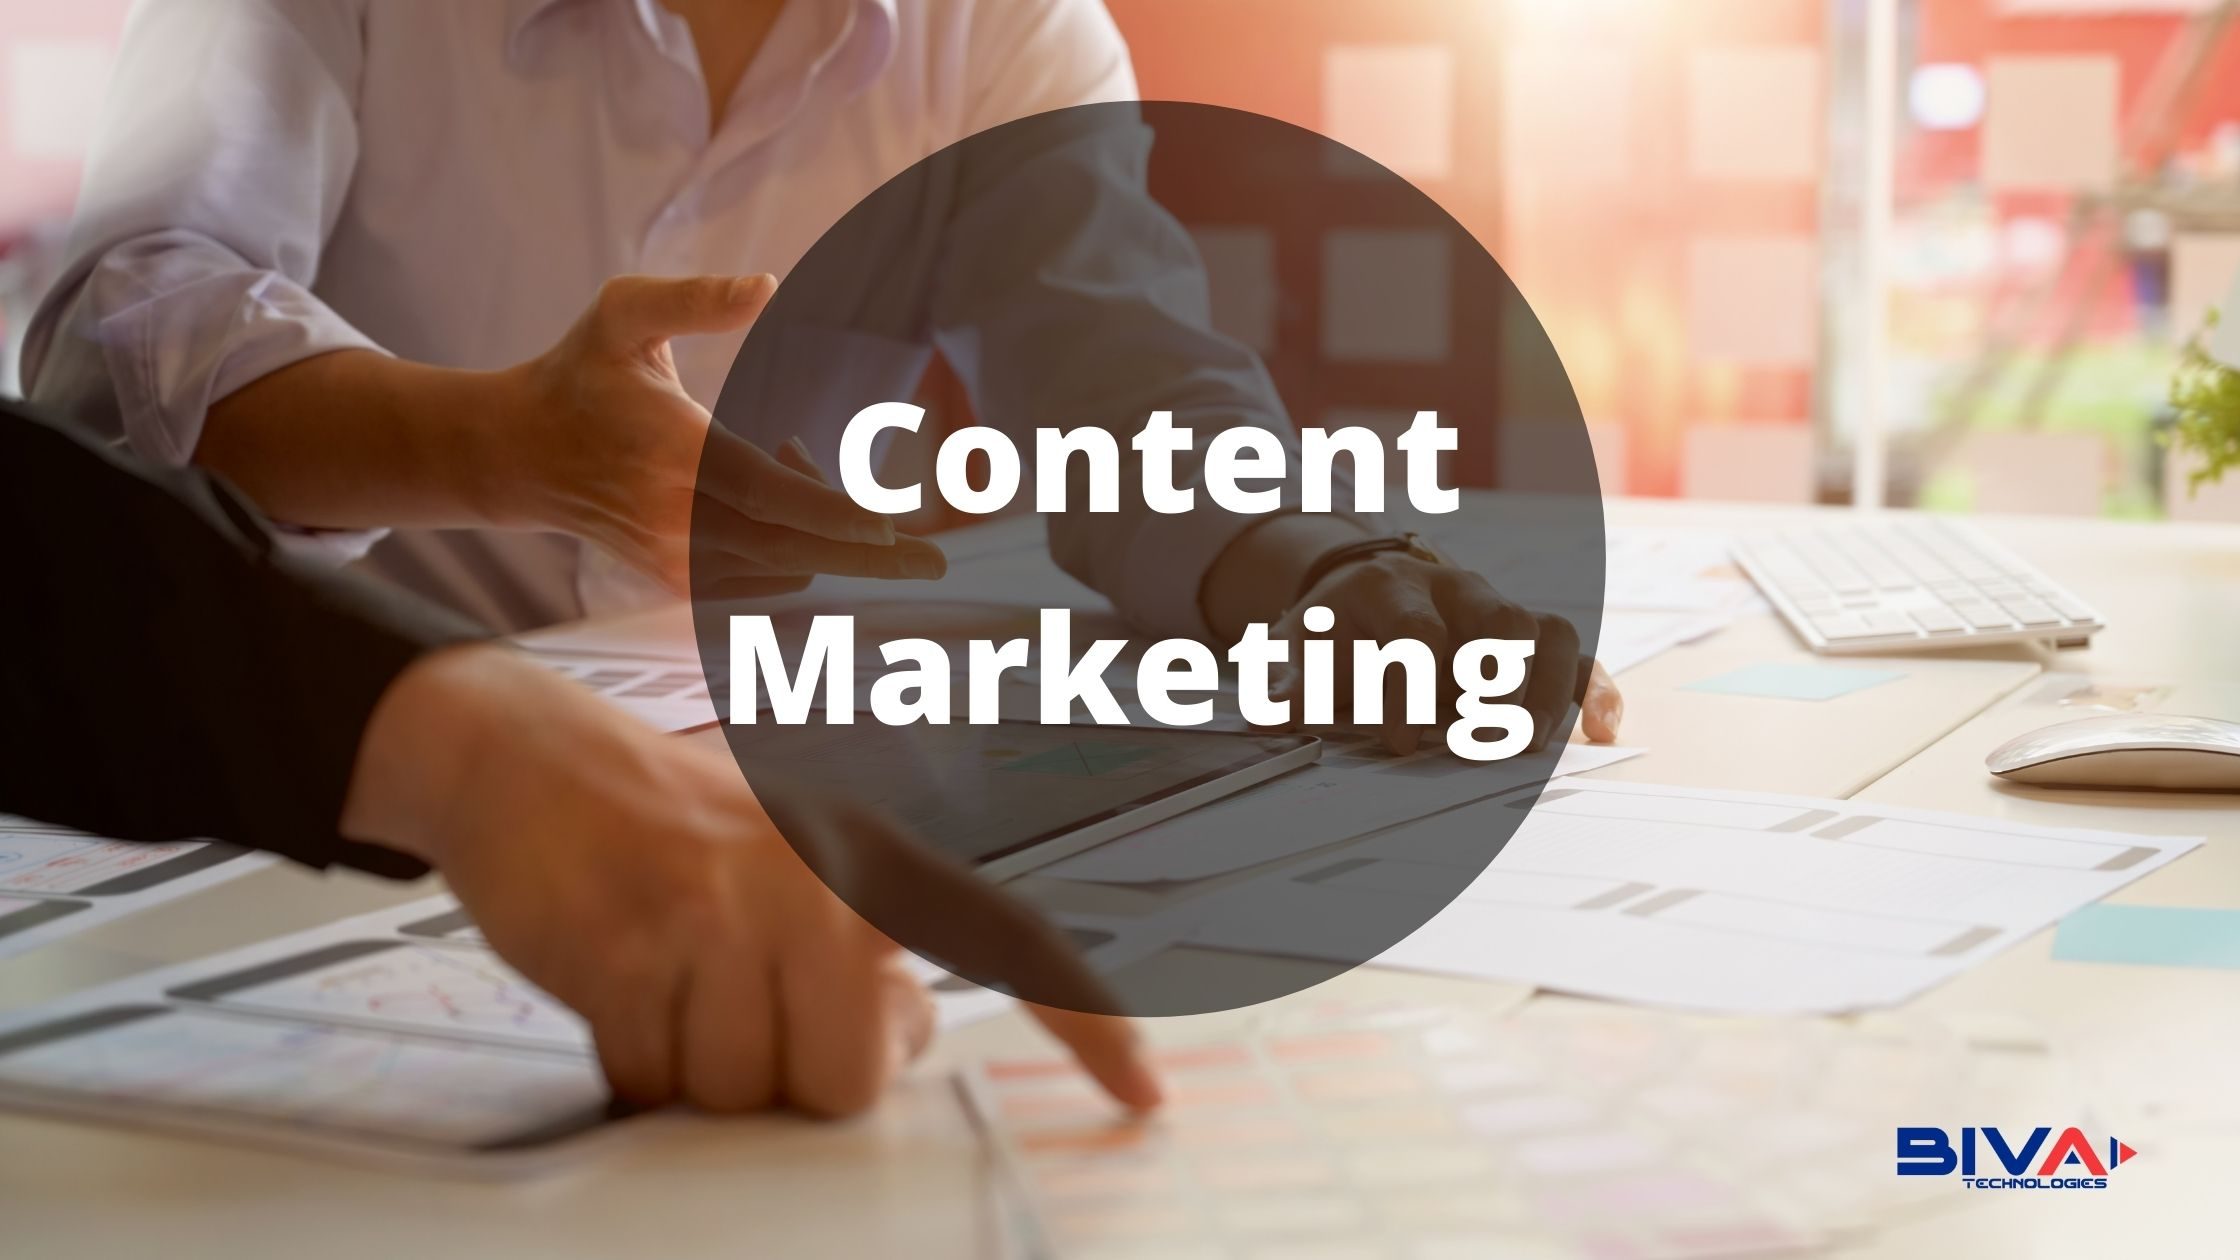 Content Marketing for Small Business (Cost-Saving)